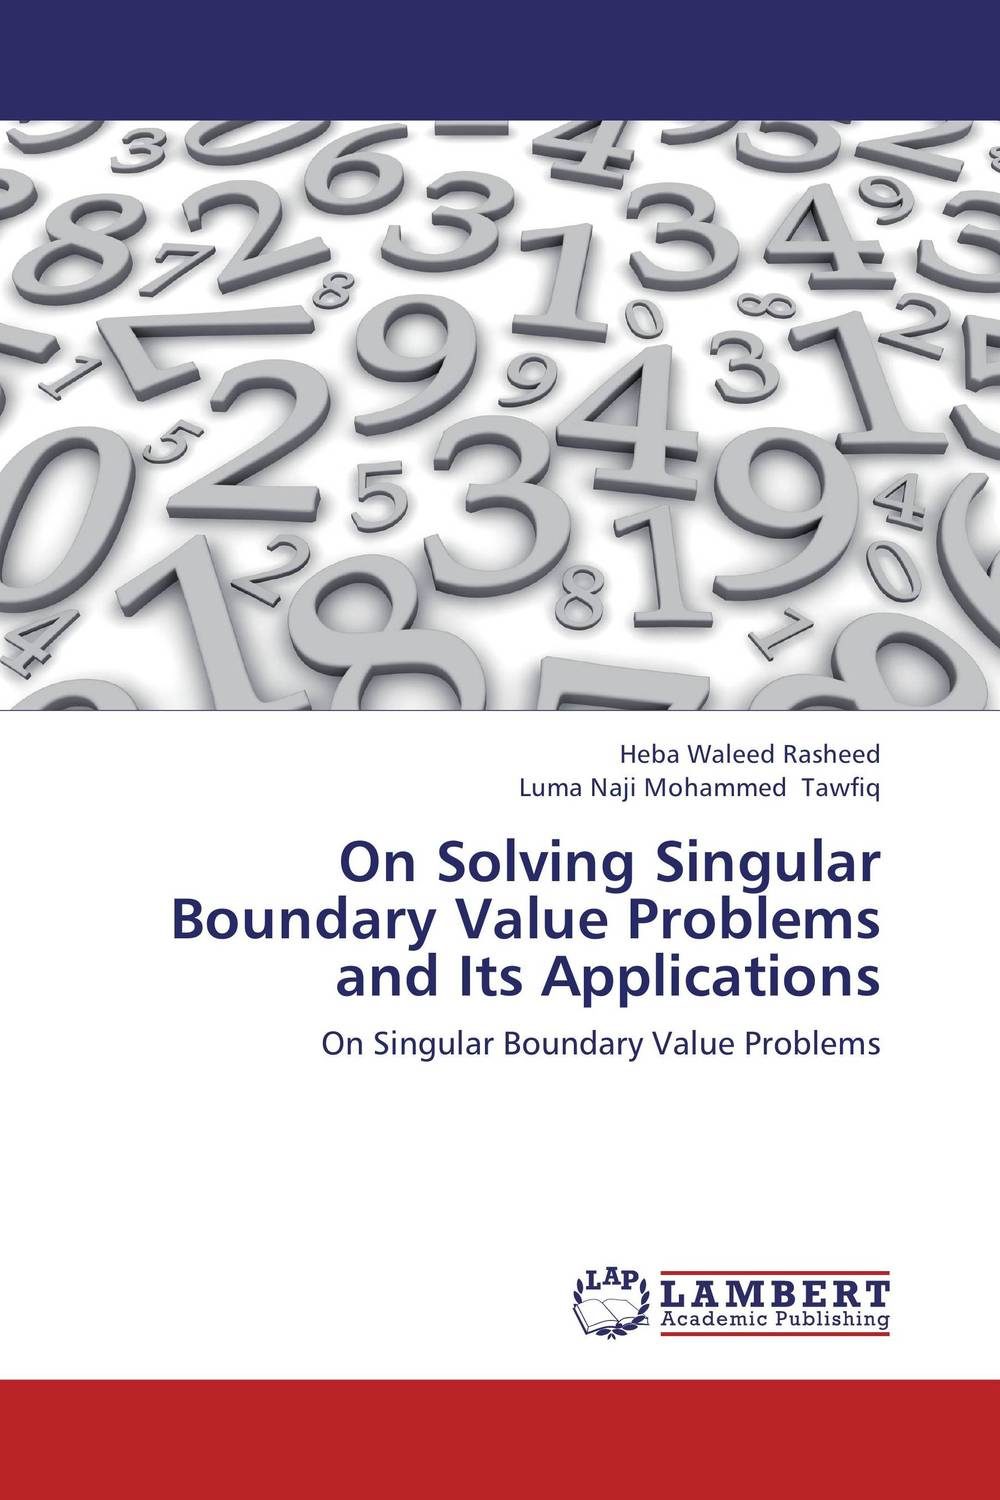 On Solving Singular Boundary Value Problems and Its Applications heba awad abd alrazak and luma naji mohammed tawfiq on initial value problems and its applications